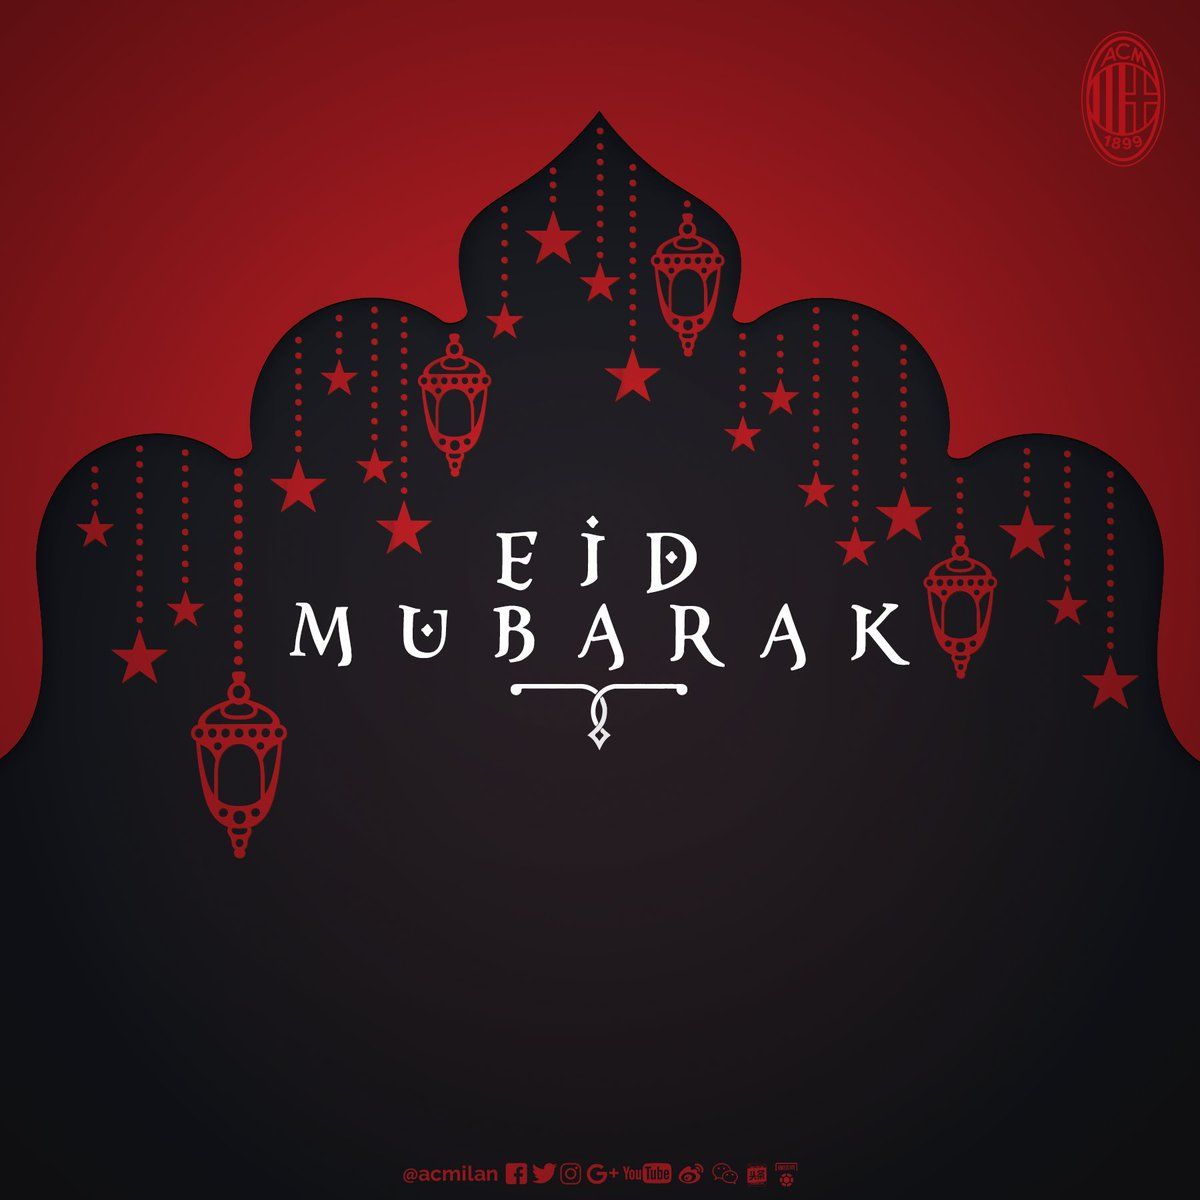 We wish all our Muslim friends and Rossoneri fans around the world a happy and peaceful #EidMubarak!